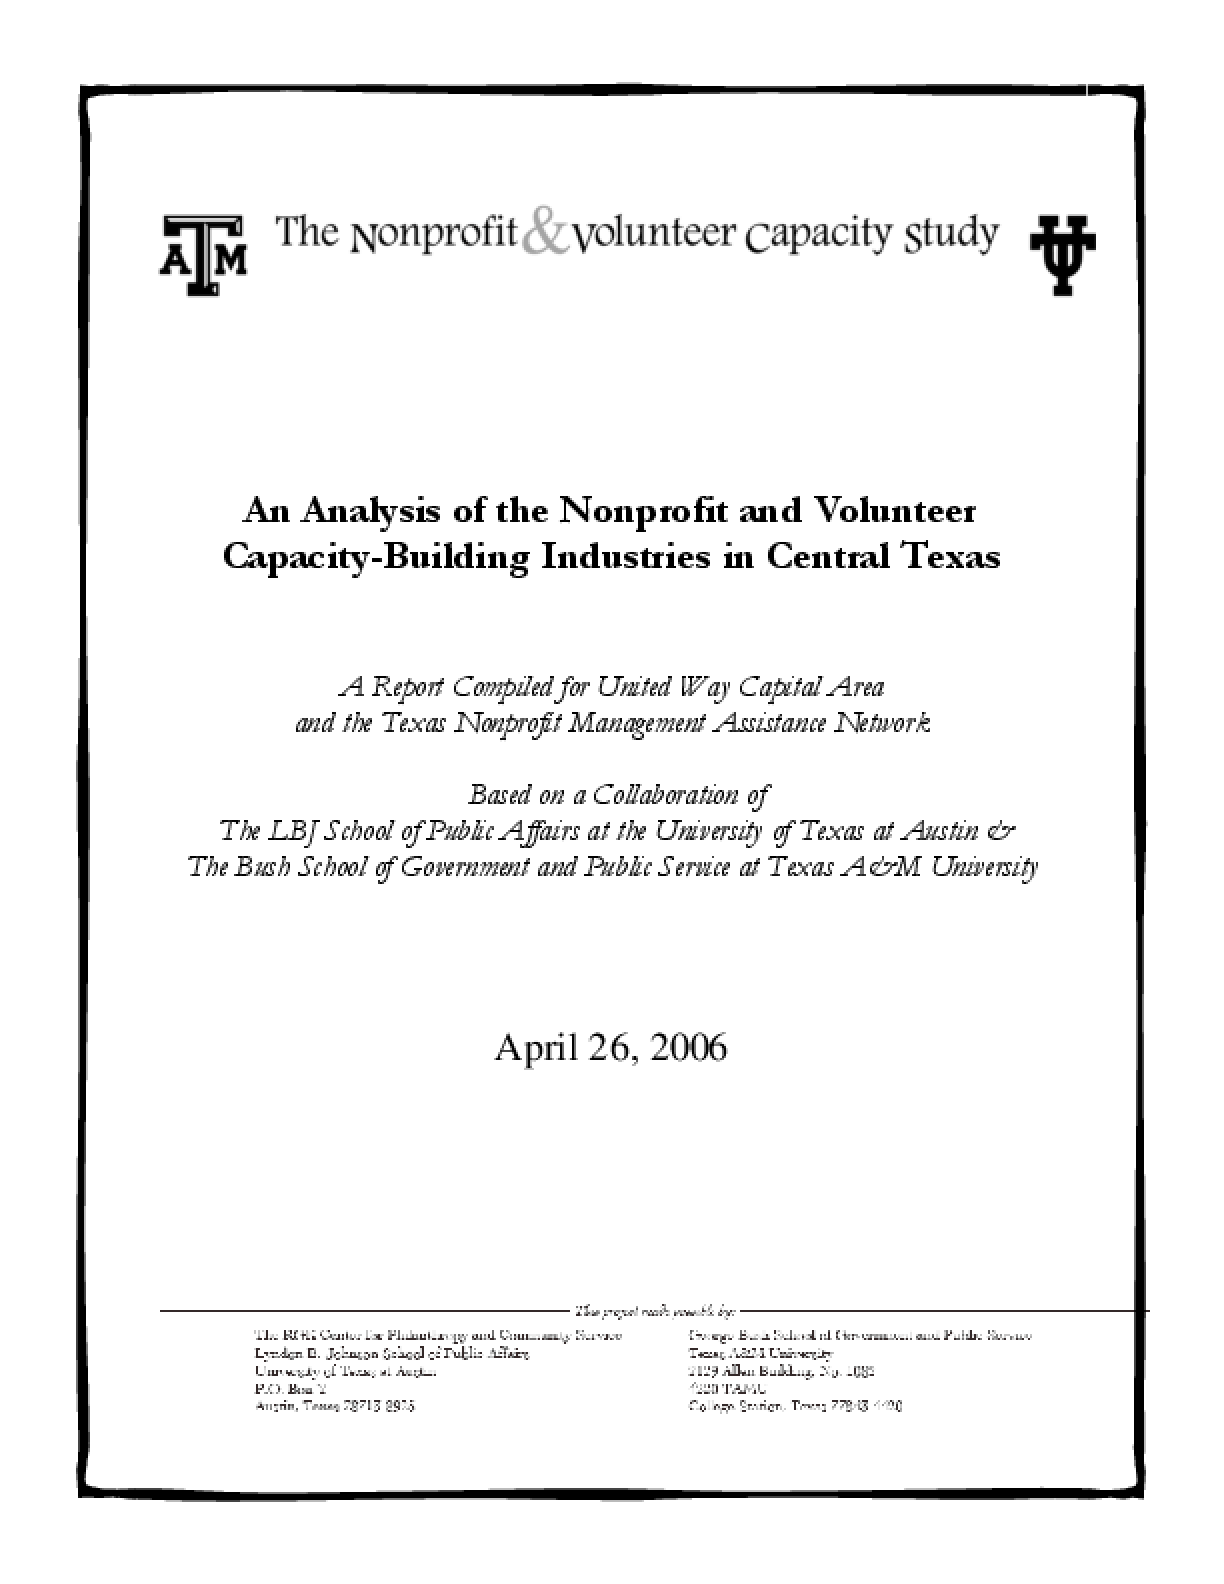 An Analysis of the Nonprofit and Volunteer Capacity-building Industry in Central Texas